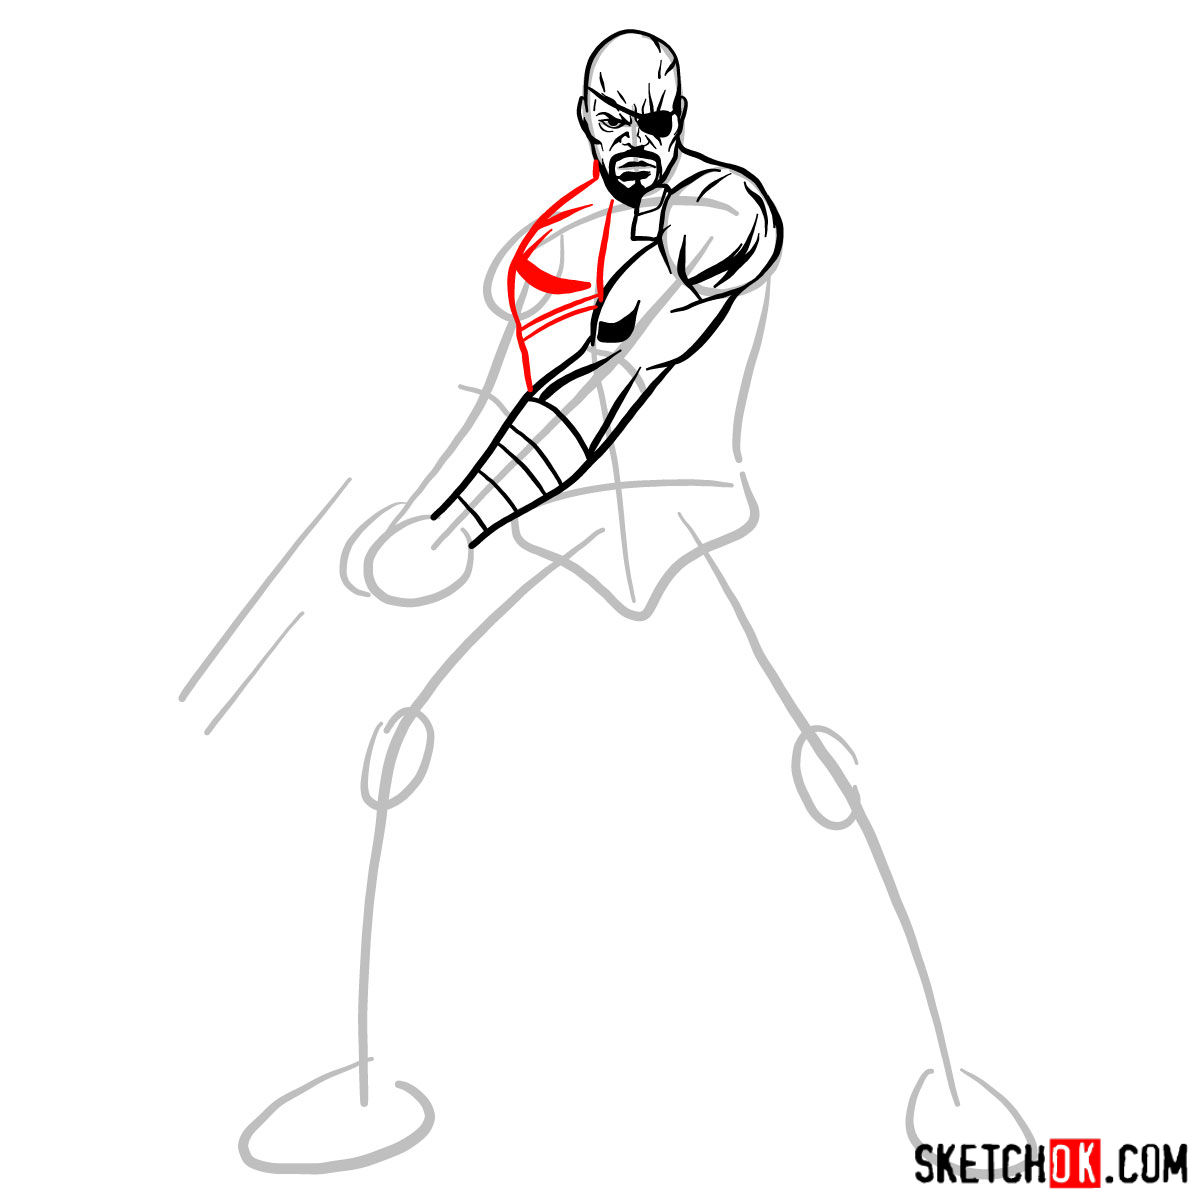 How to draw Nick Fury from the Avengers - step 07